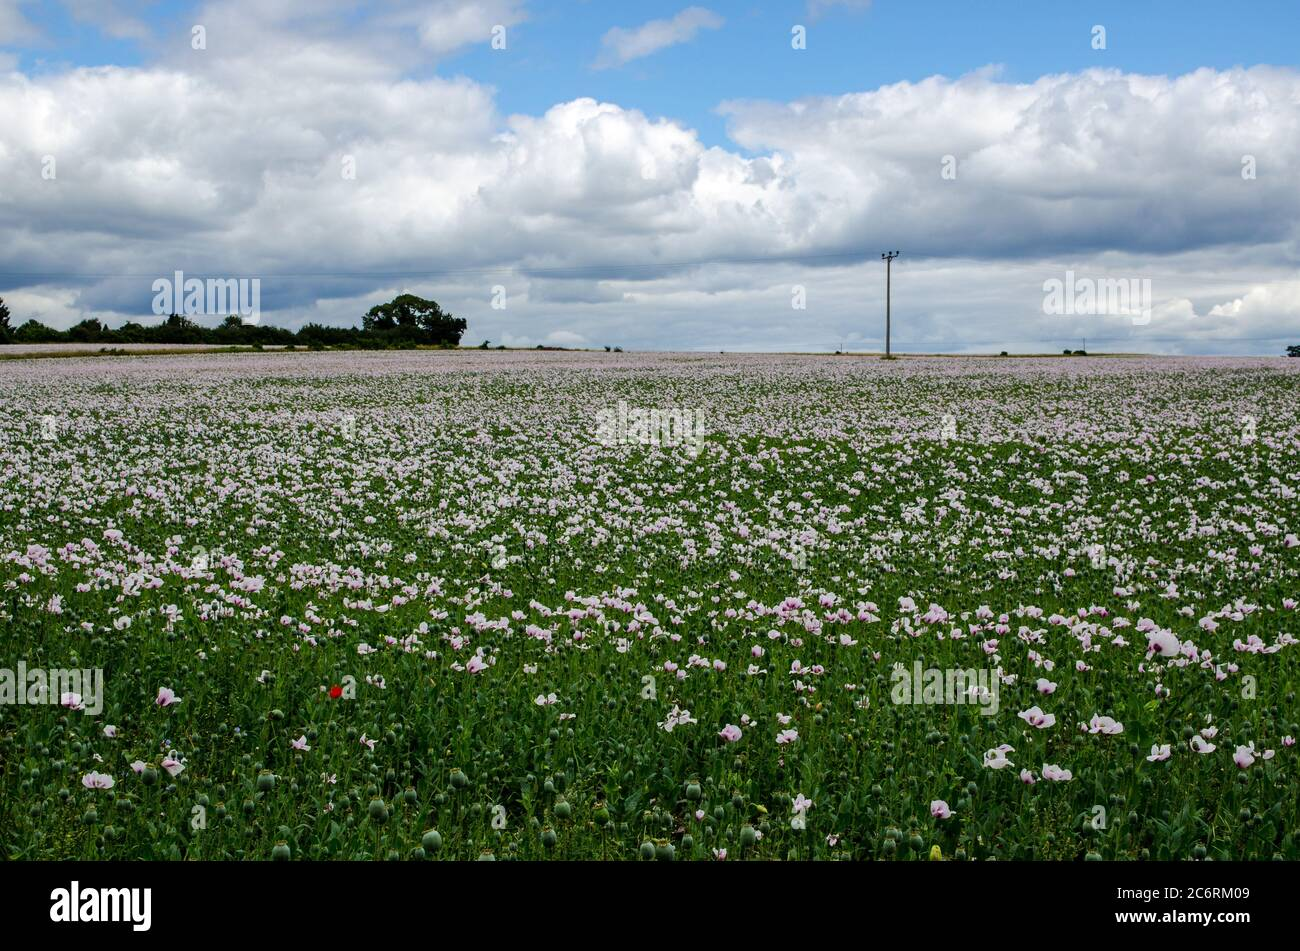 A field full of opium poppies, latin name Papaver somniferum, growing as a crop in Hampshire, UK.  The seed heads will be used to produce medicinal mo Stock Photo